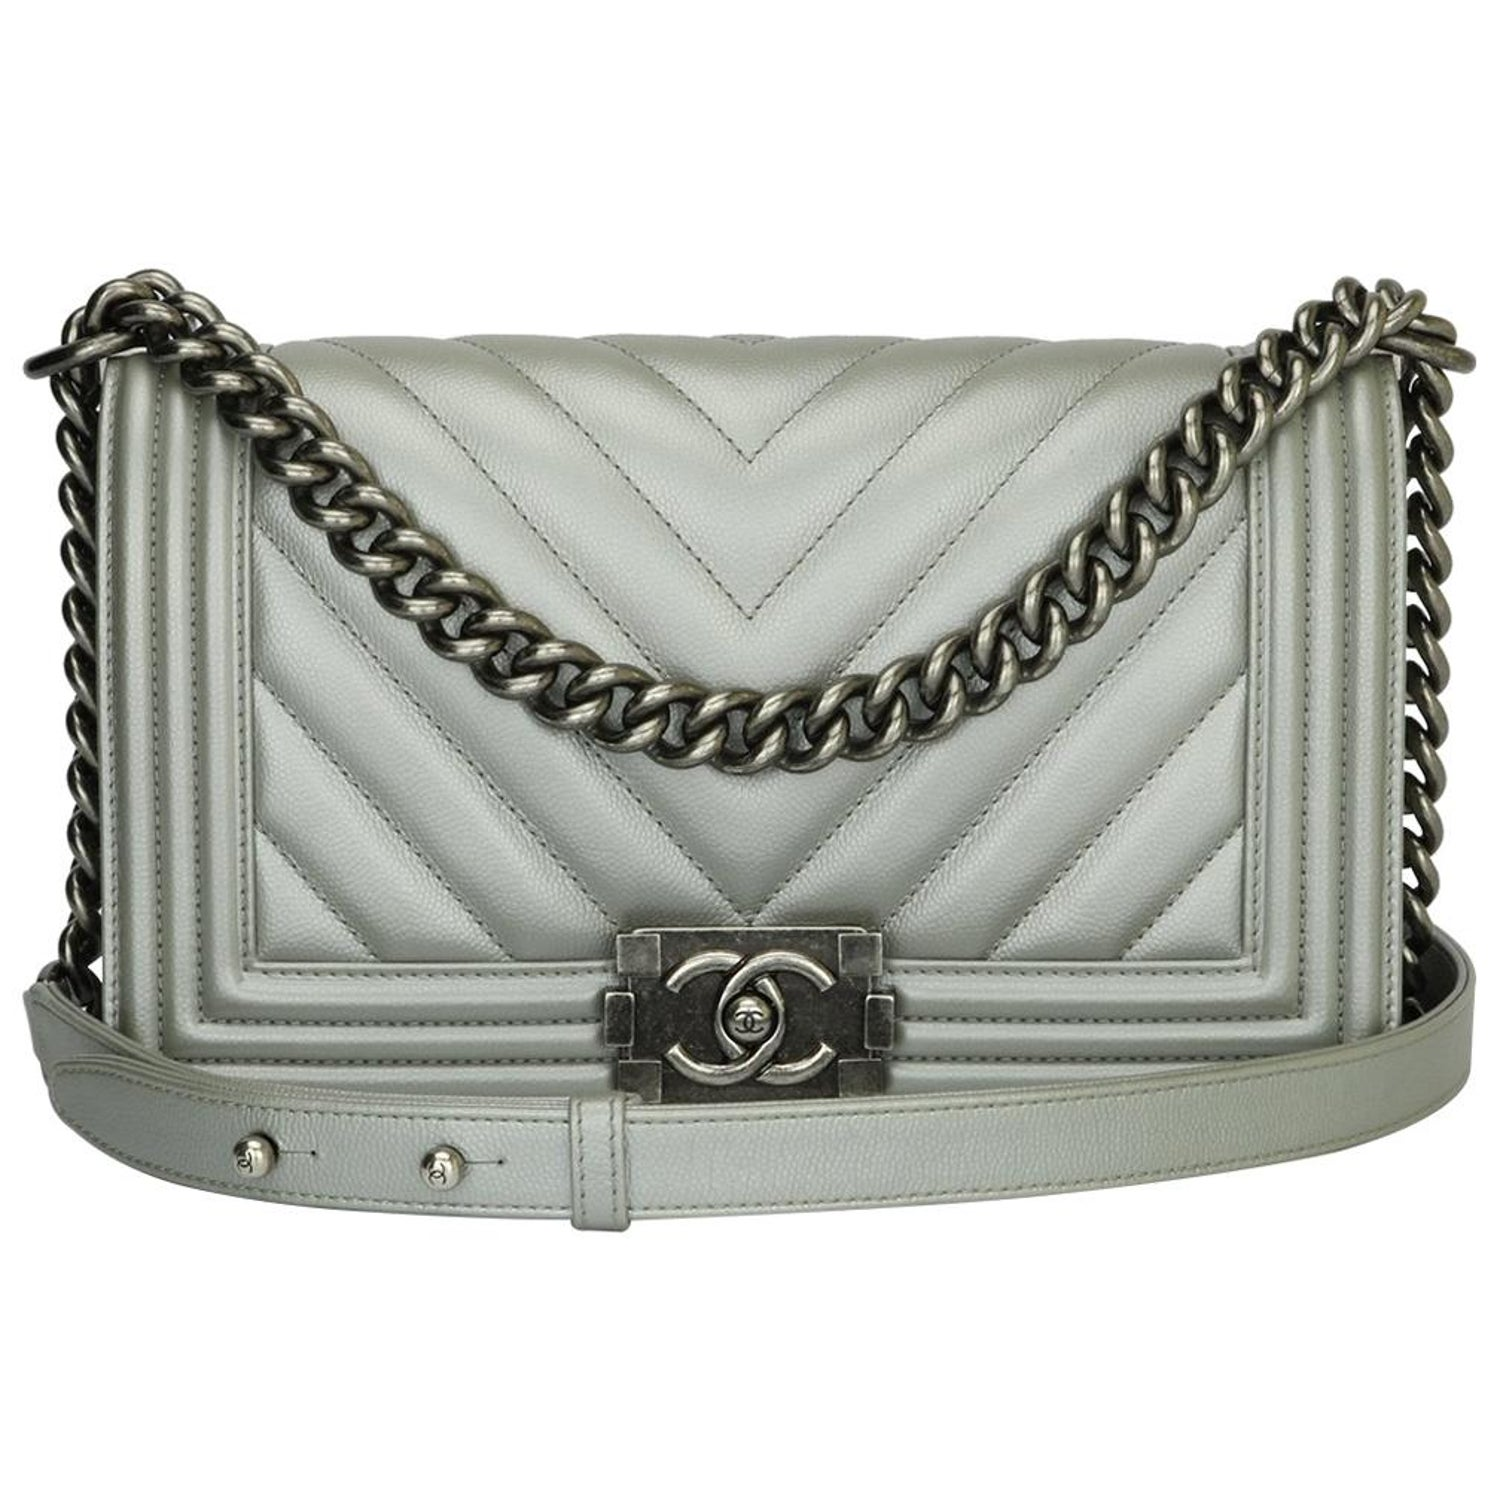 3e2477a45c08fc CHANEL Old Medium Chevron Boy Bag Silver Caviar with Ruthenium Hardware  2016 at 1stdibs